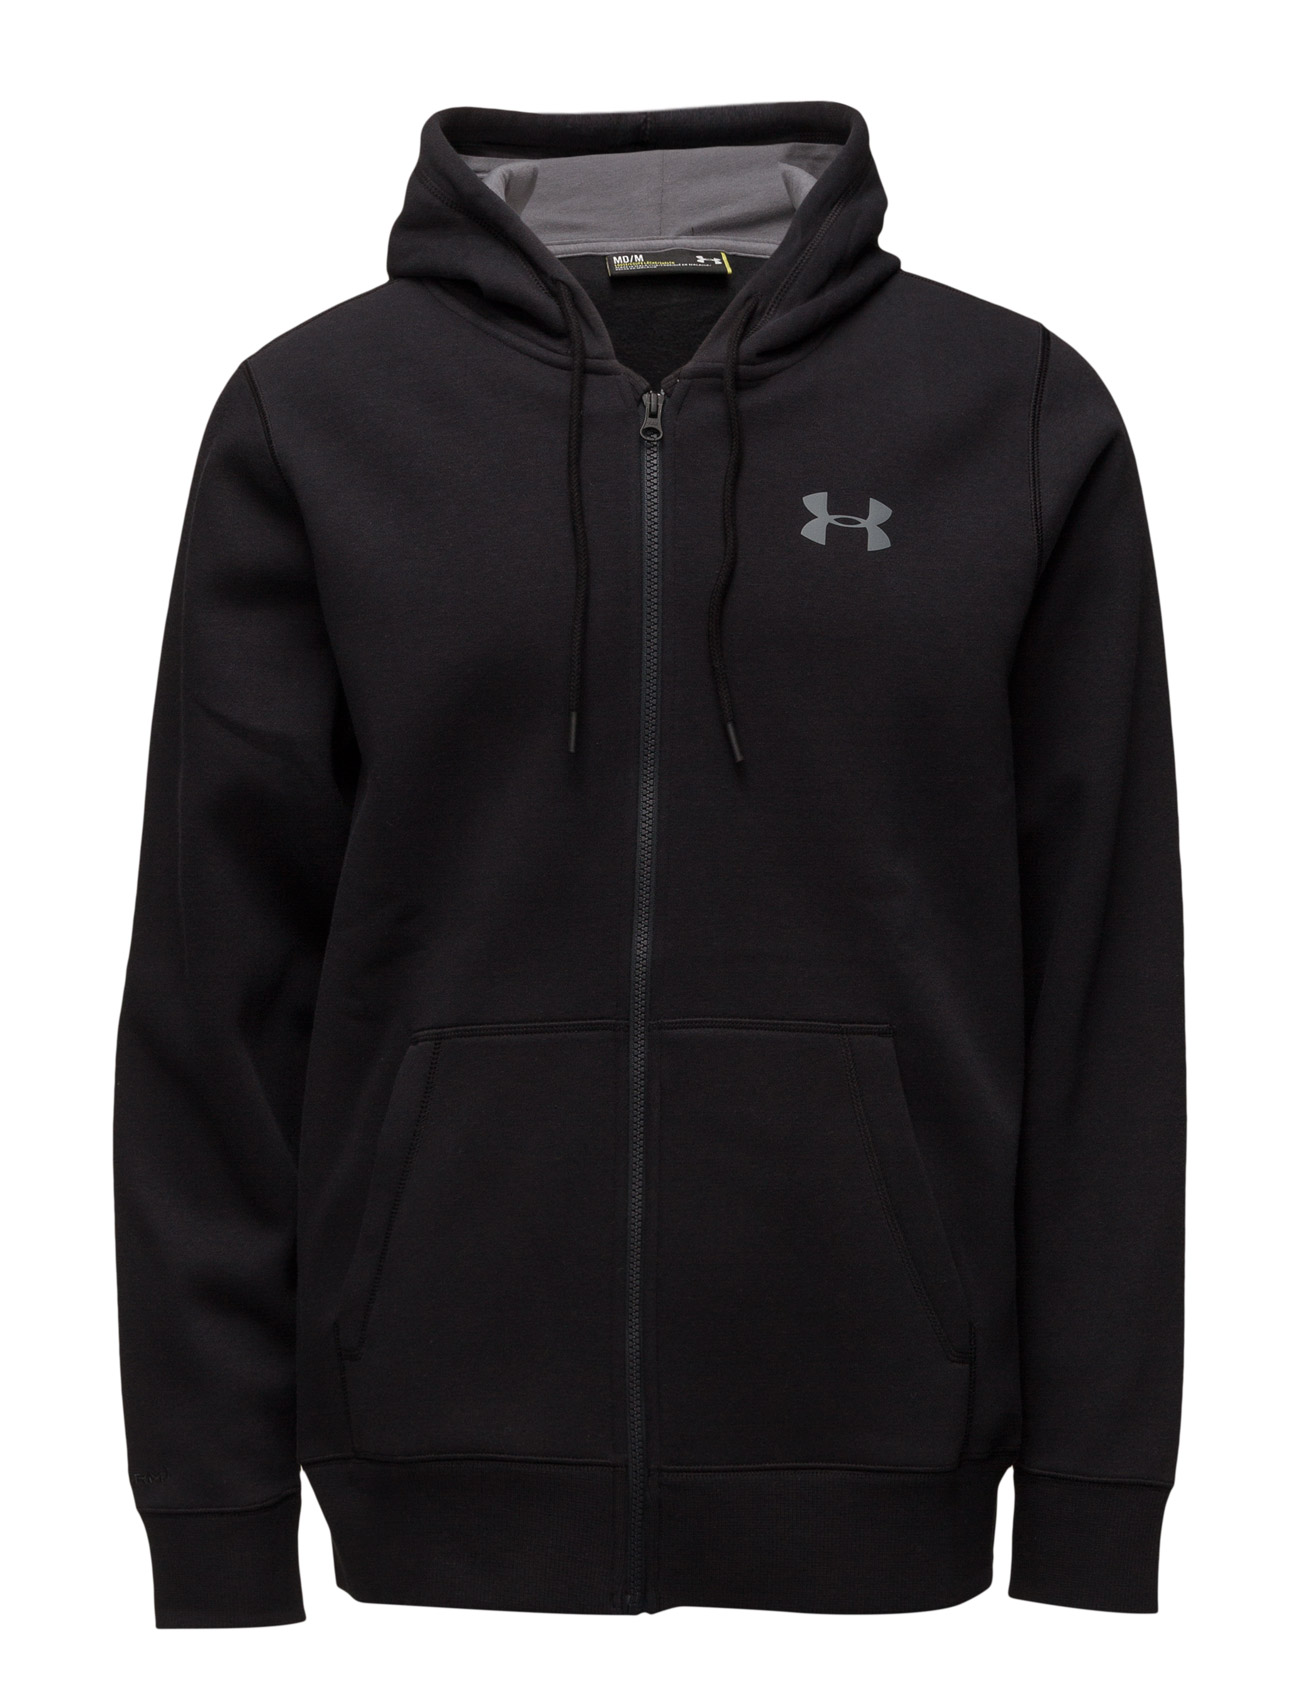 under armour – Storm rival cotton full zip på boozt.com dk